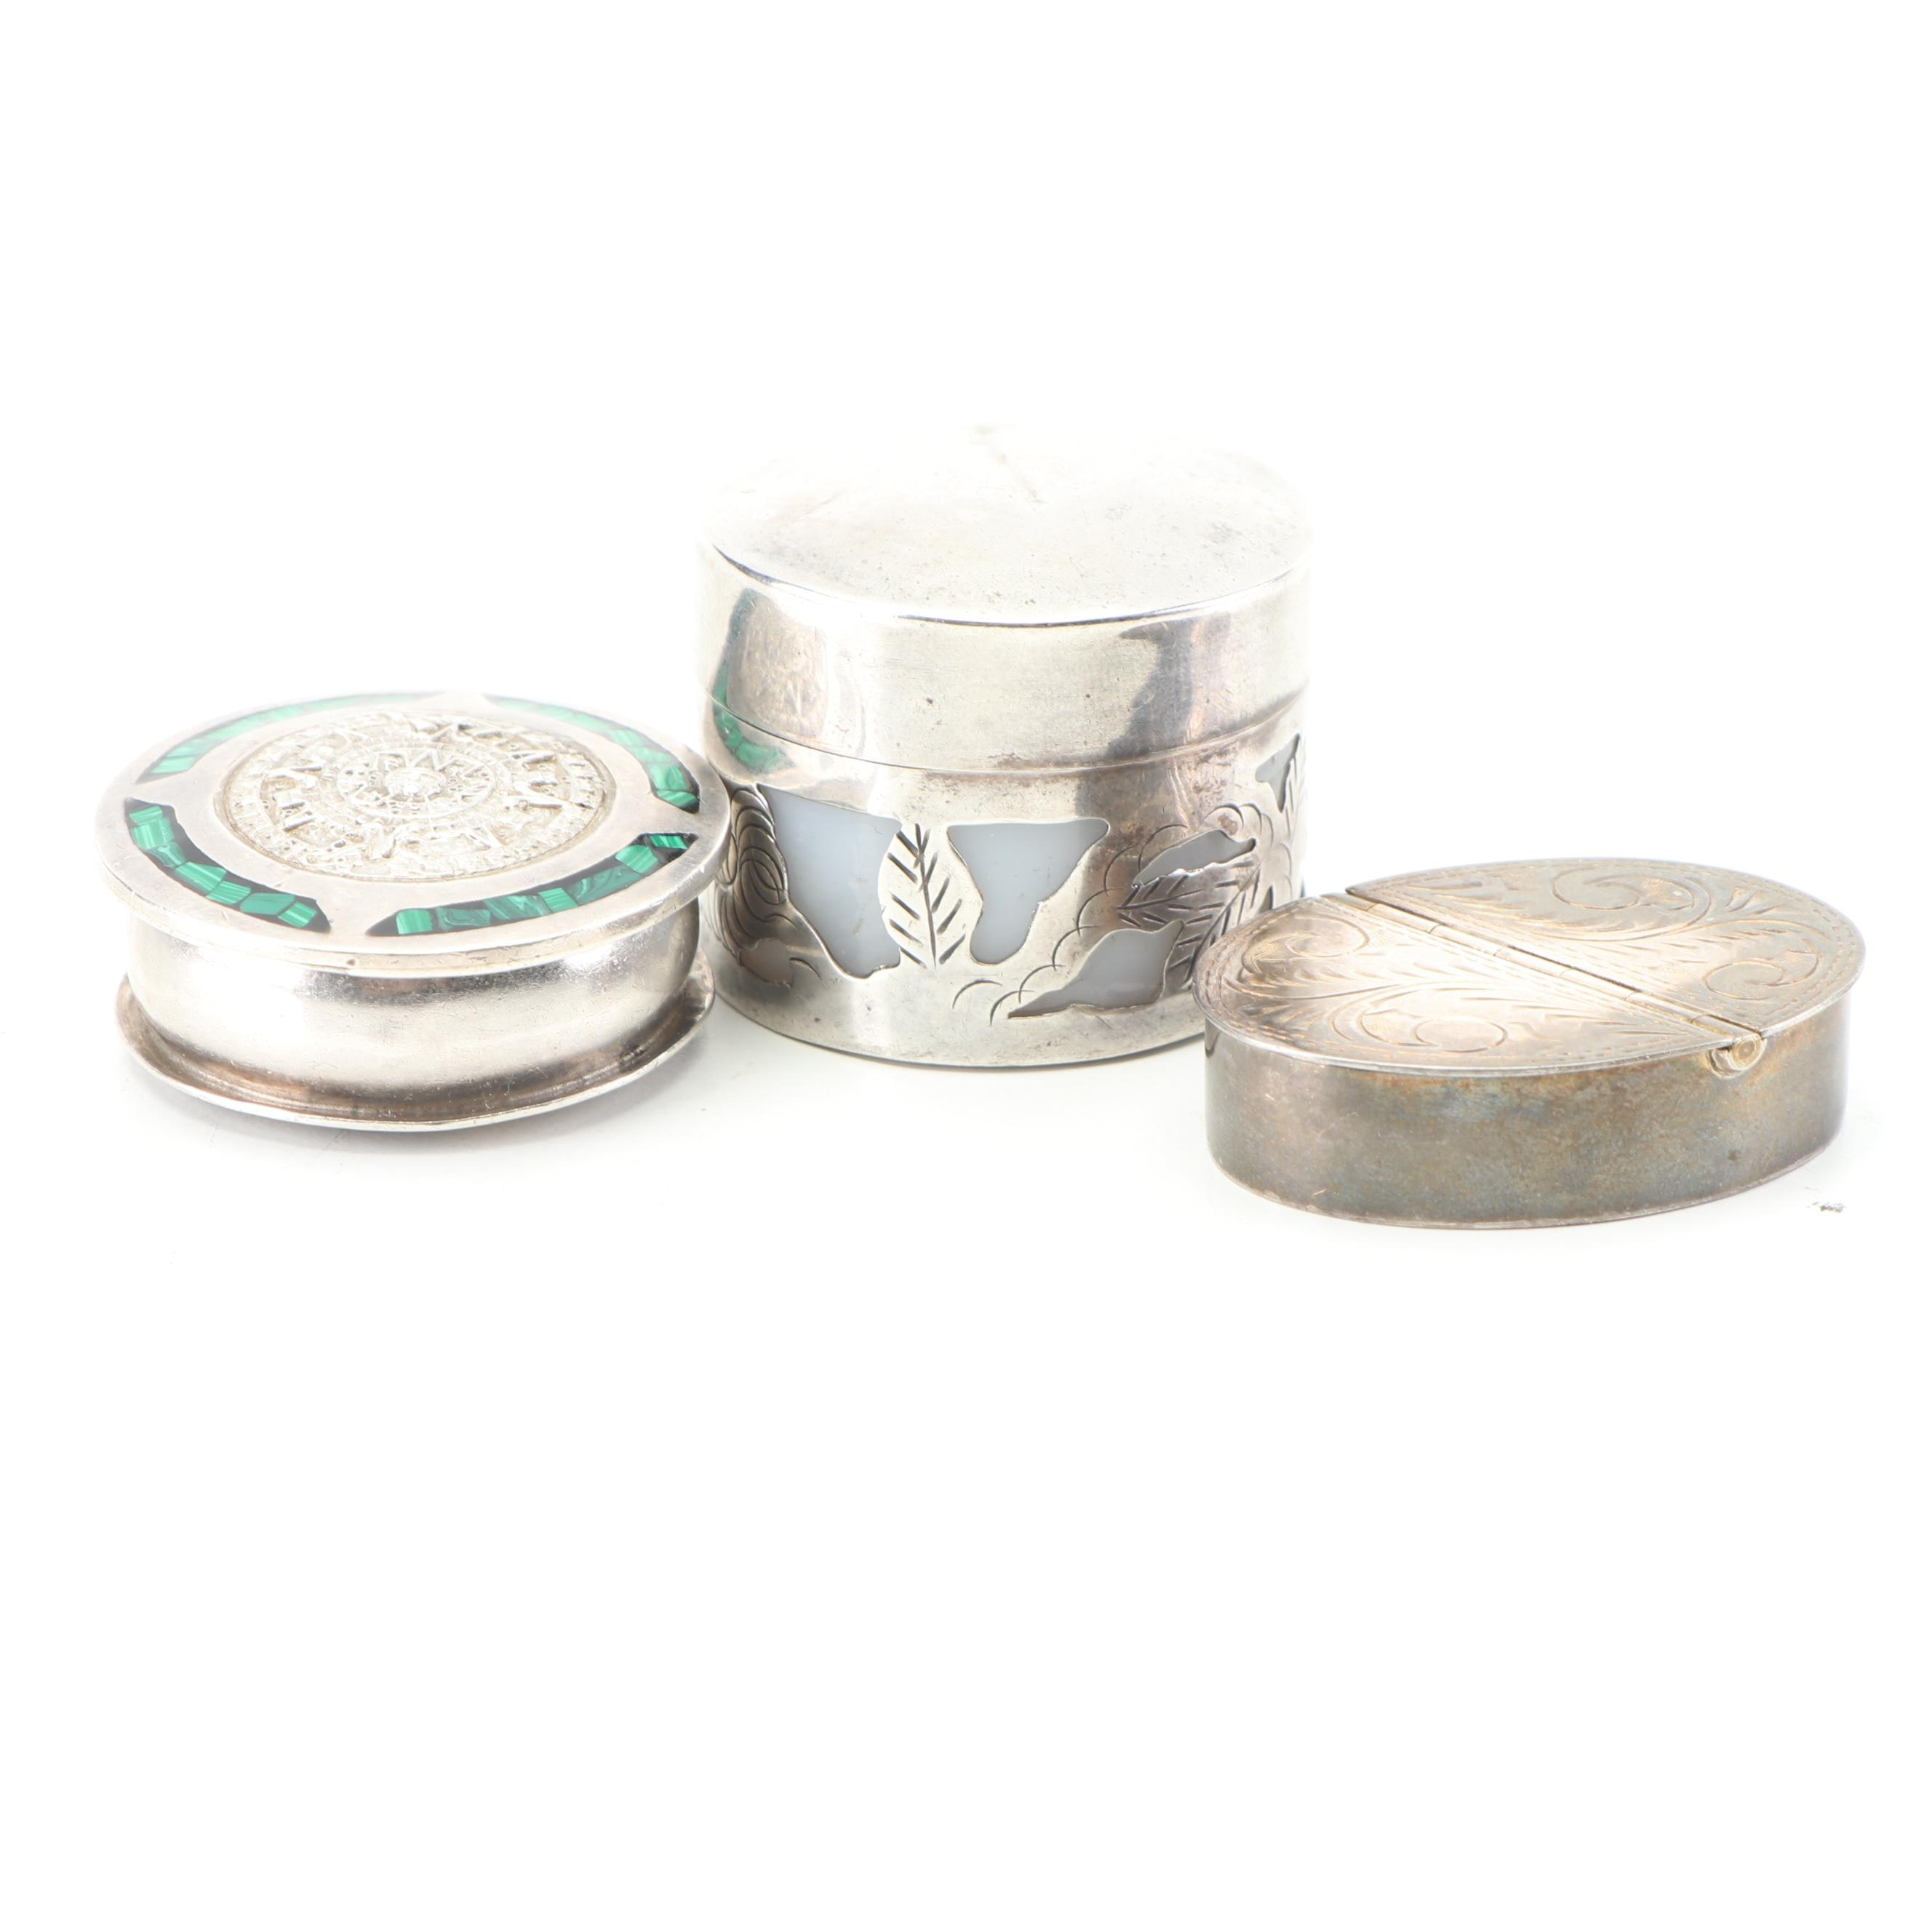 Sterling Silver with Malachite Inlay and Other Pill Boxes, 20th Century